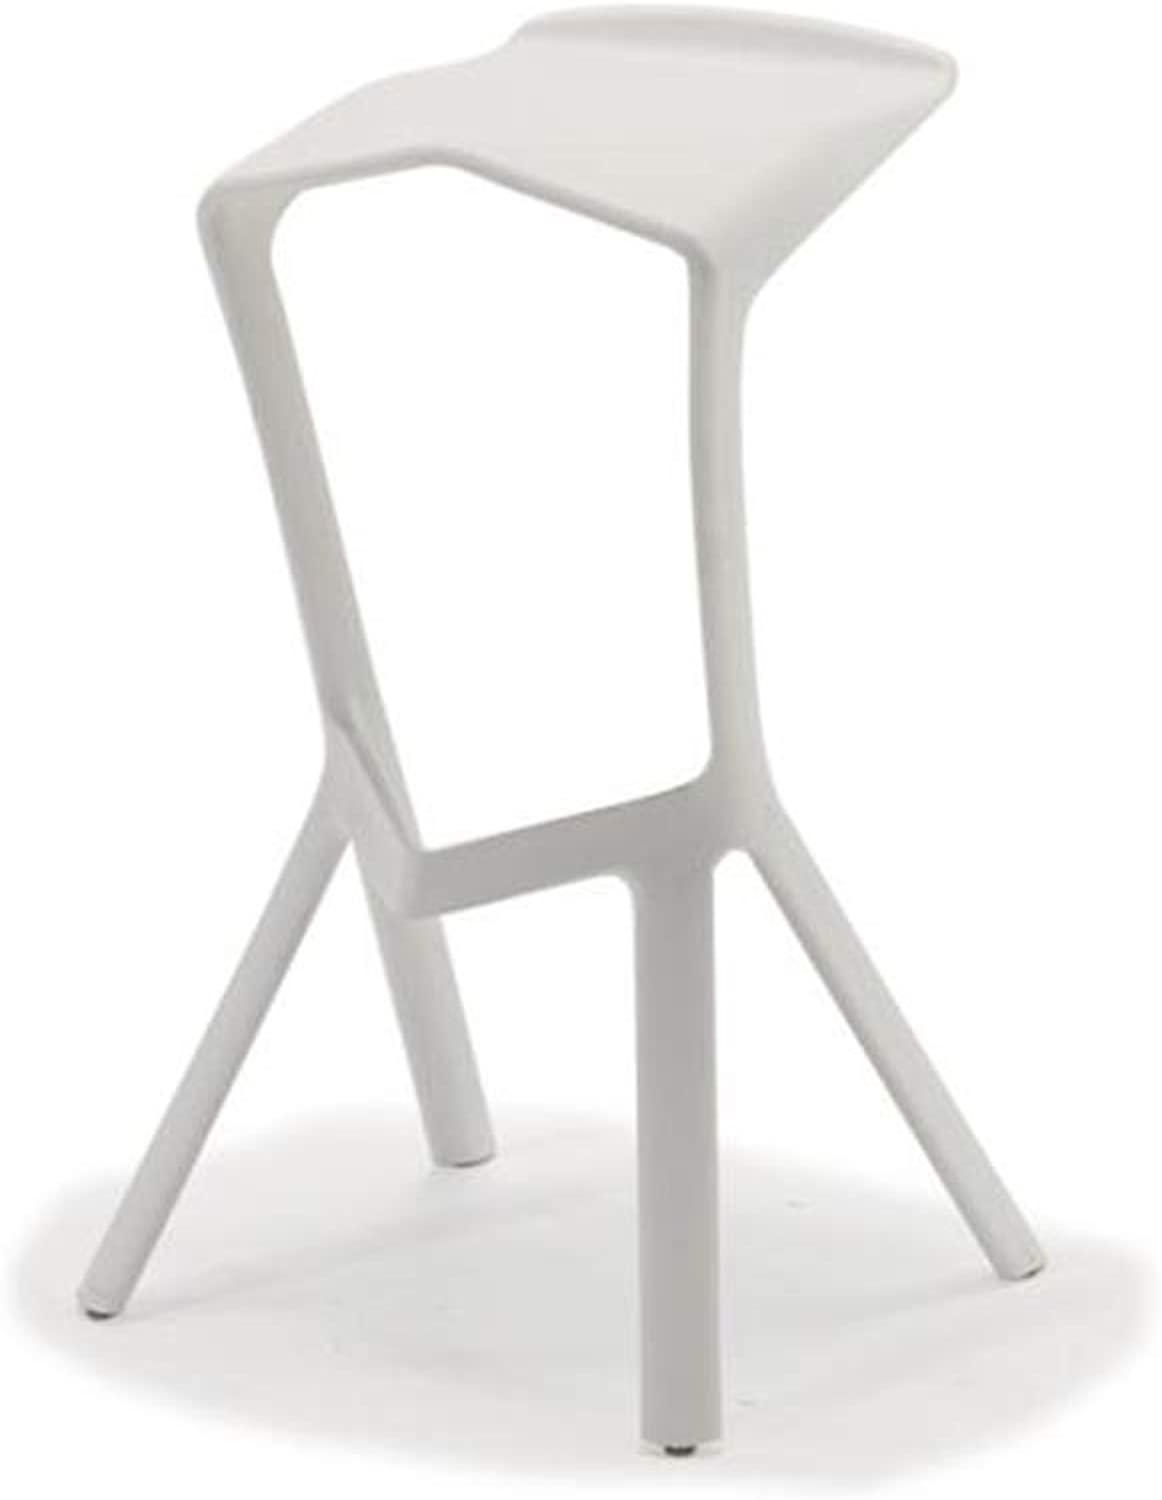 QIDI Bar Stool Counter Chairs Anti-Slip for Home Kitchen Cafe Bar 6 colors (color   White)